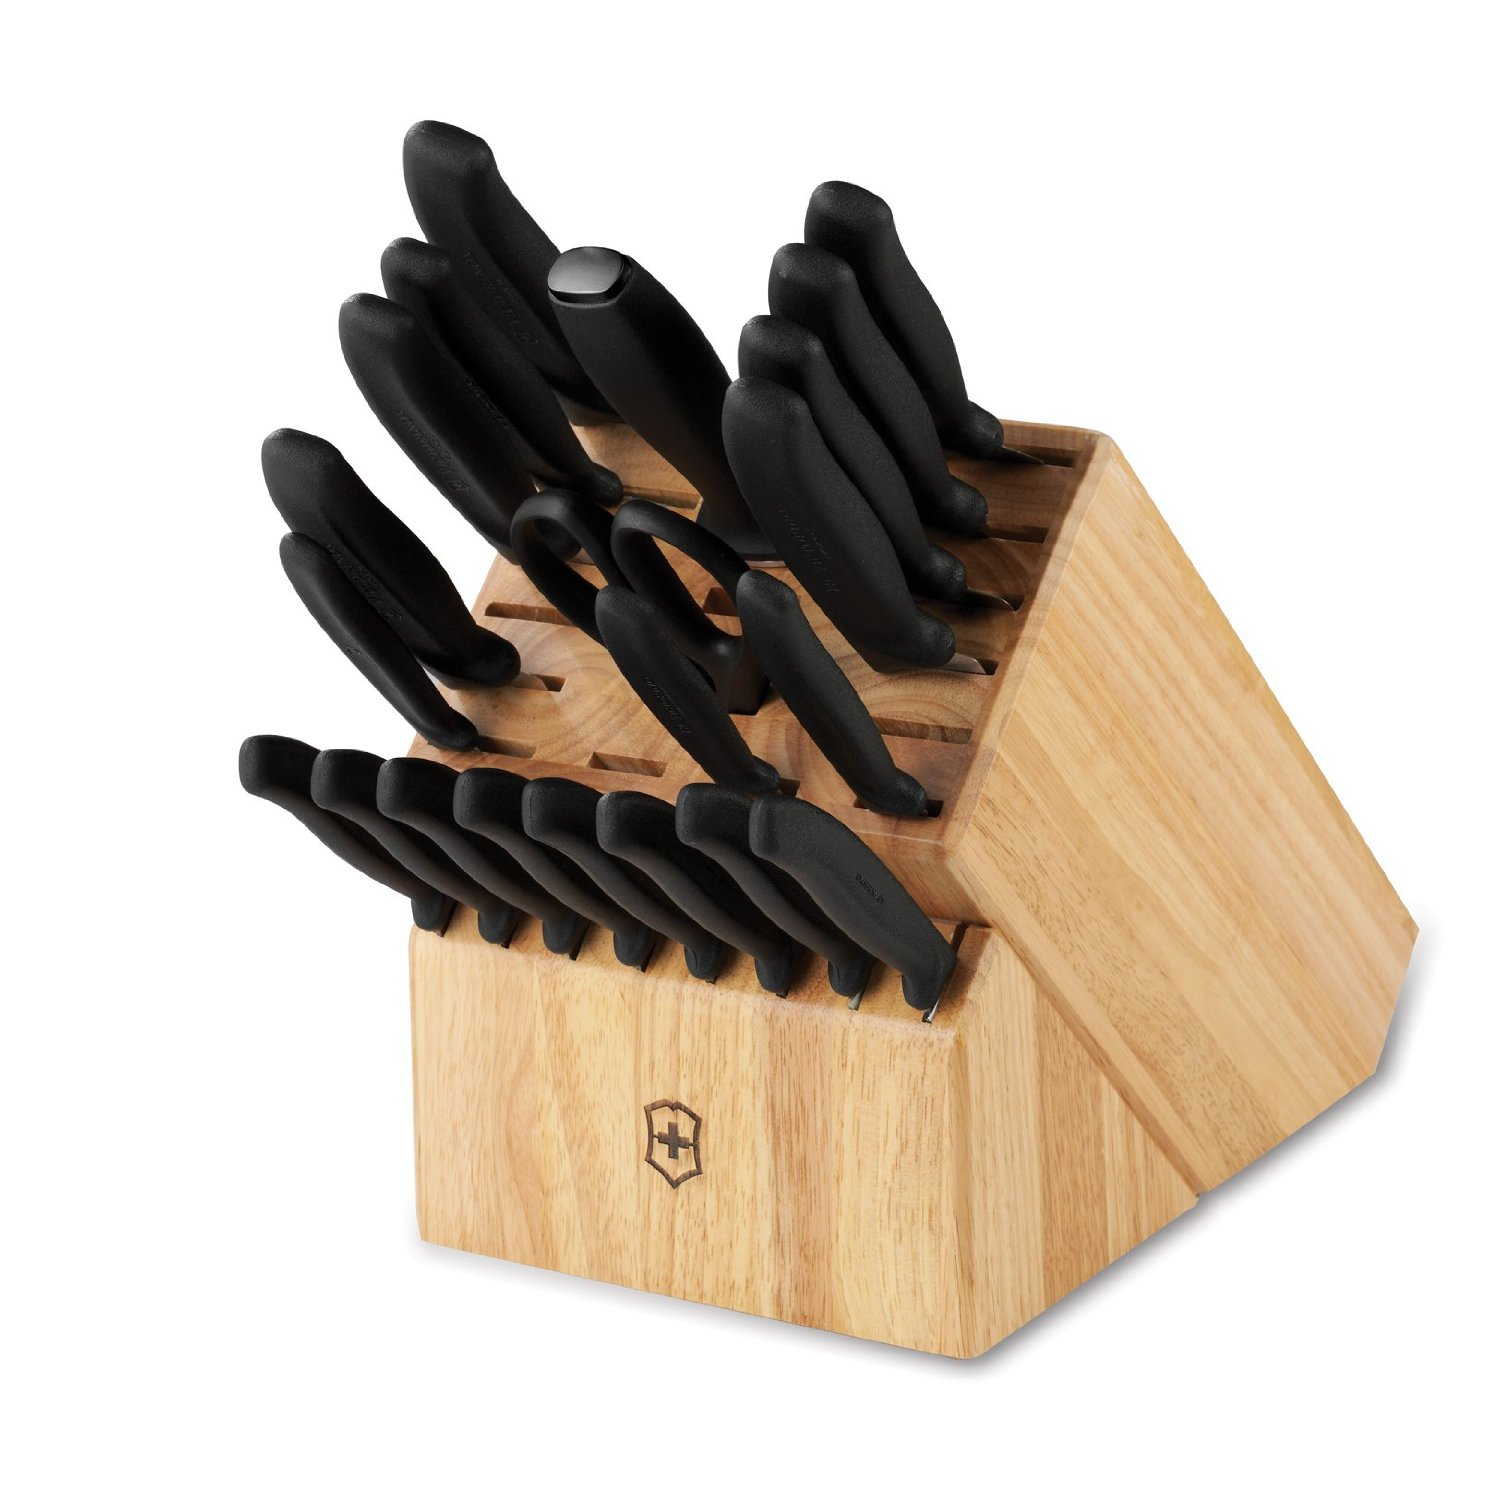 best kitchen knife sets best kitchen knifes chef knife sets best chef knife for beginner kitchen knife king